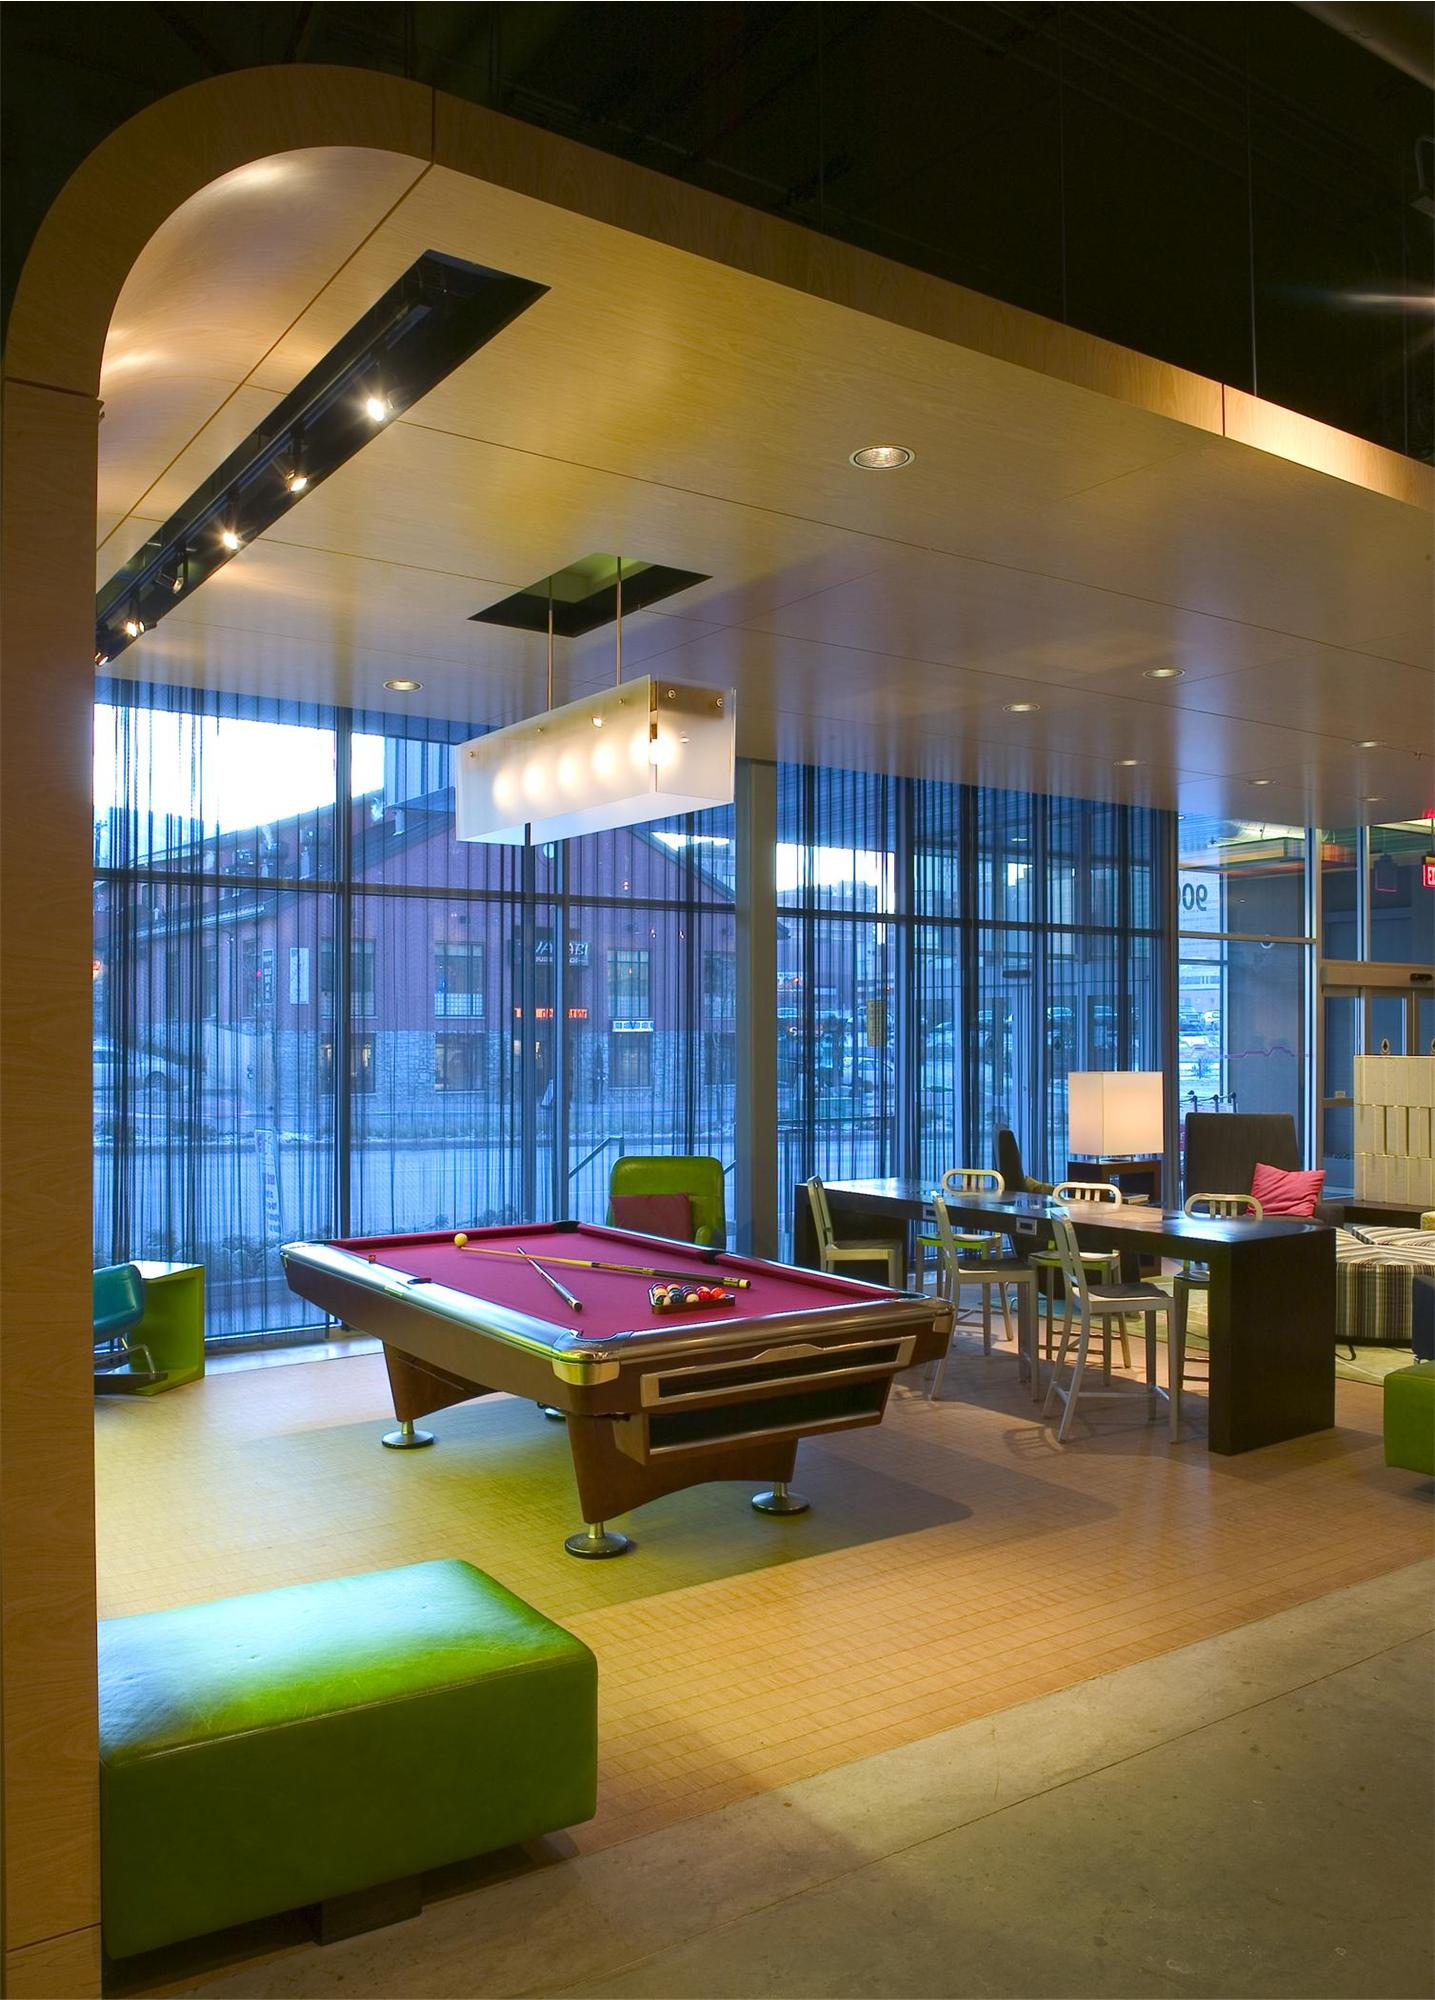 Seating area with a billiards table in the Aloft Hotel in Minneapolis, MN